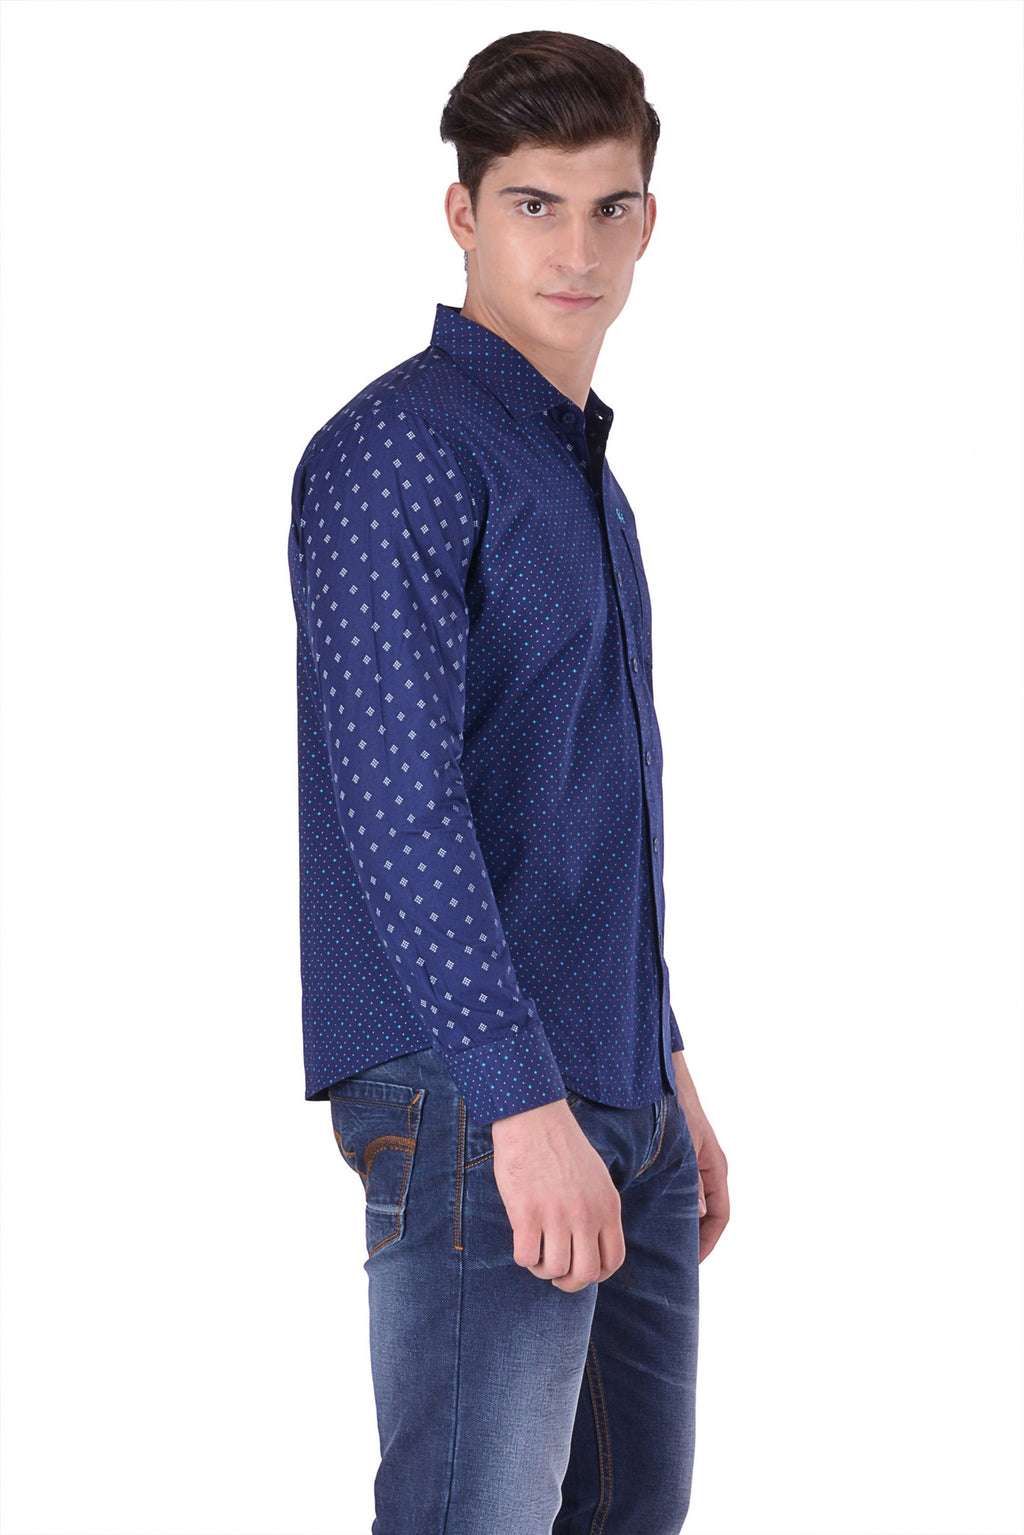 Hoffmen Men's Casual Shirt CR6081